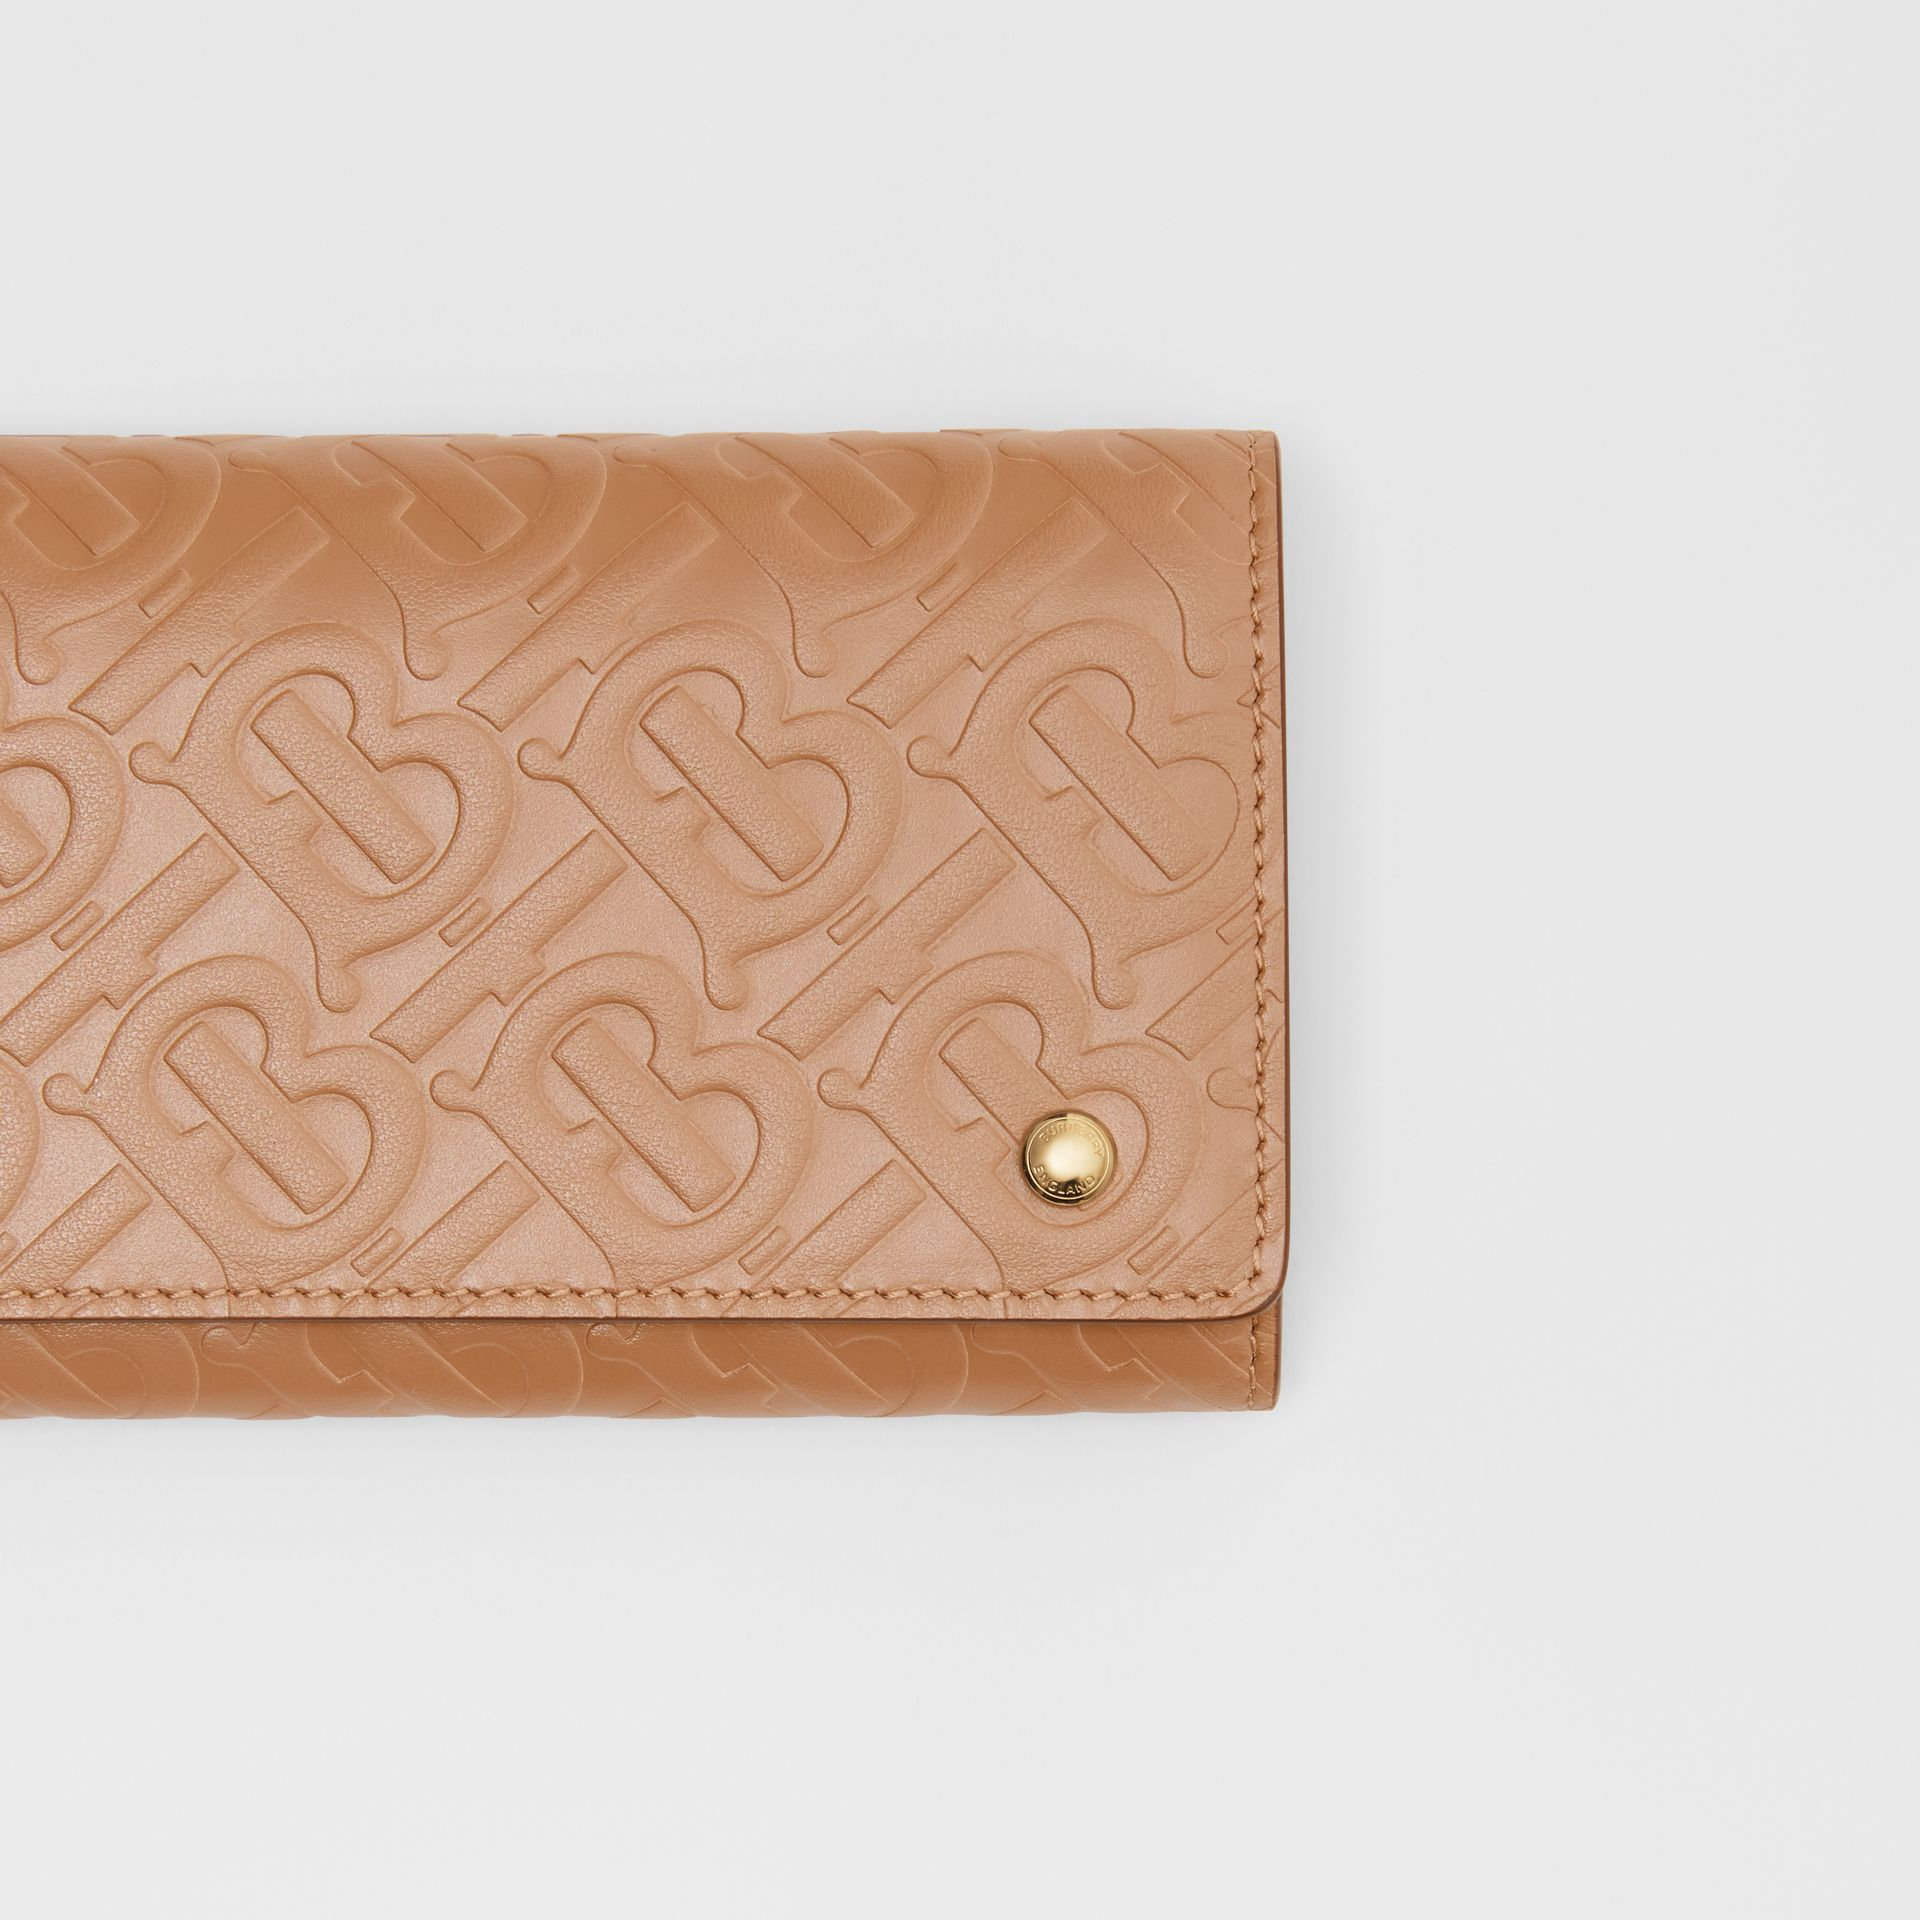 Monogram Leather Continental Wallet in Light Camel - Women | Burberry - gallery image 1